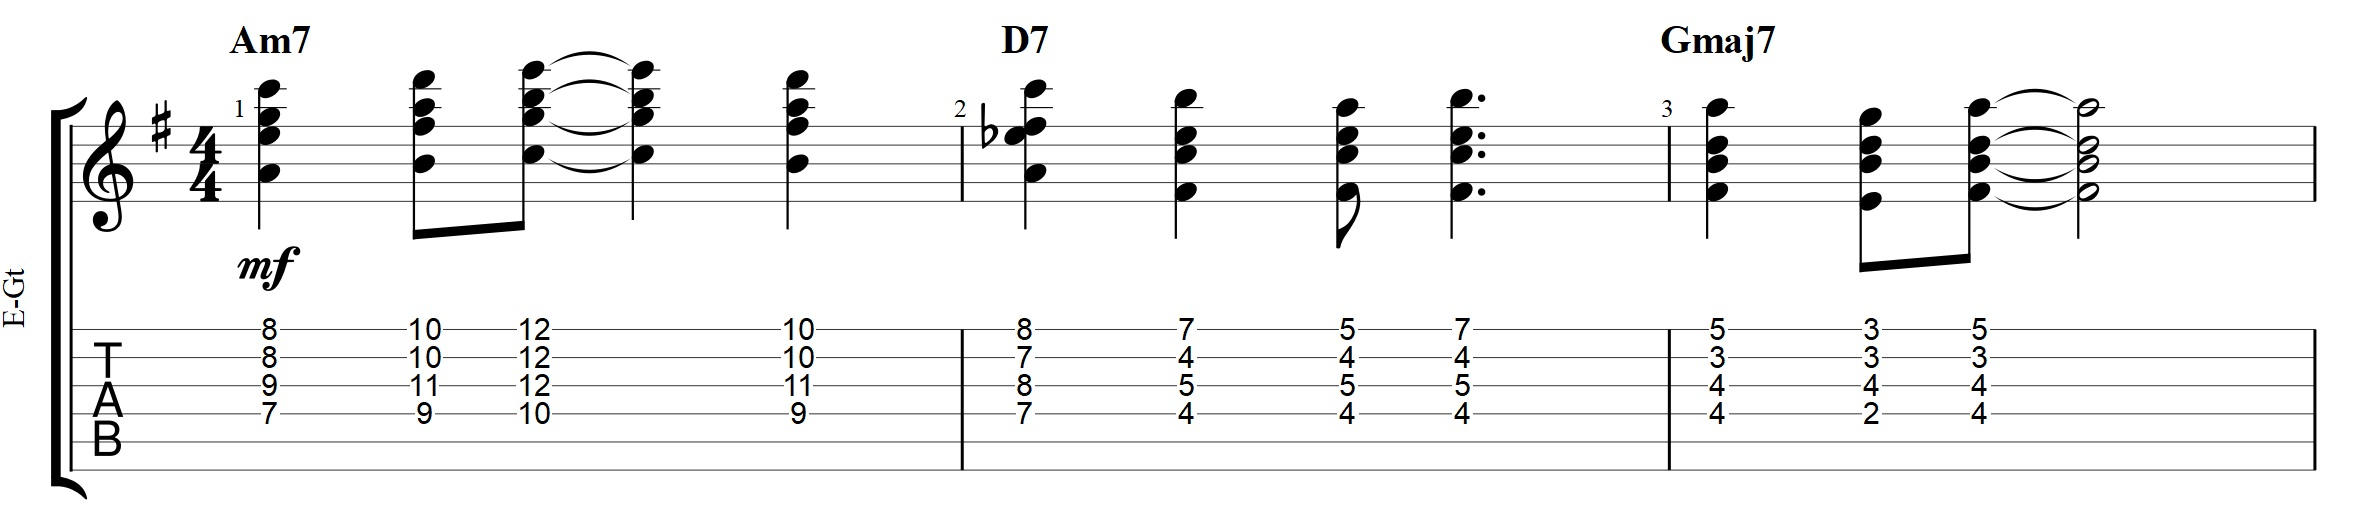 Bm7 Guitar Chord Passing Chords The 3 Types You Need For Comping And Chord Solos